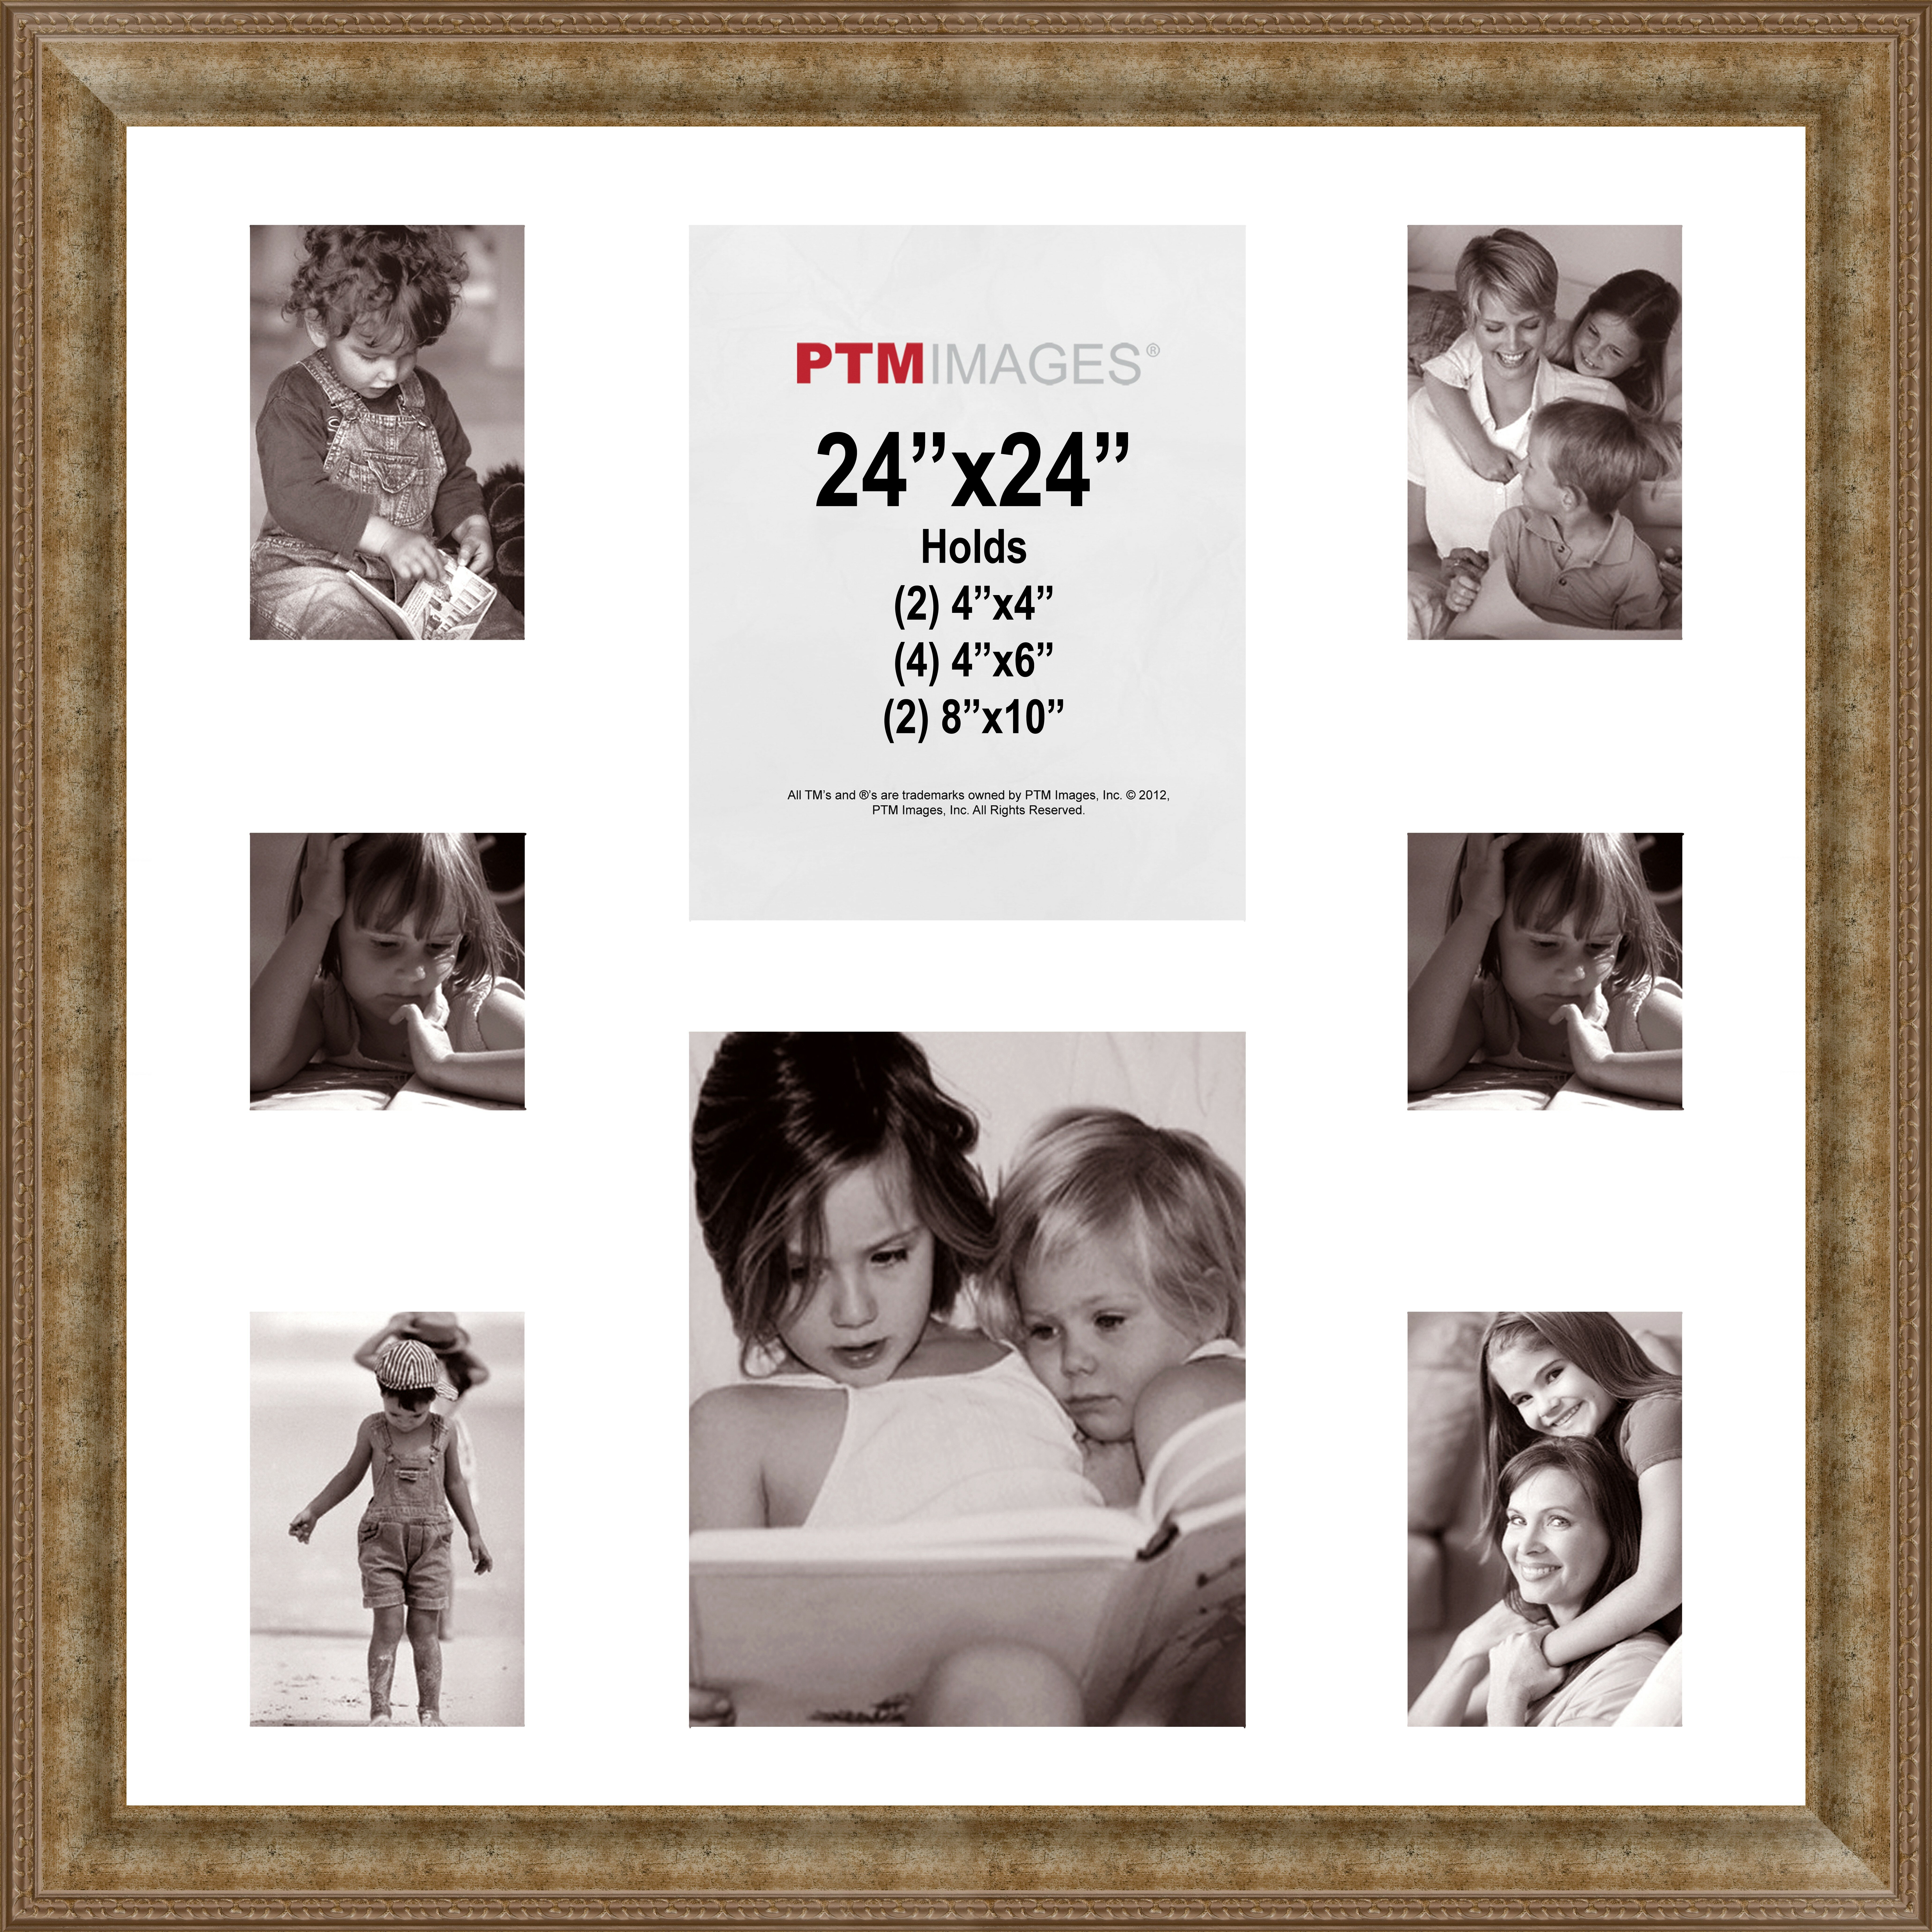 PTM Images Photo Collage Picture Frame | Wayfair